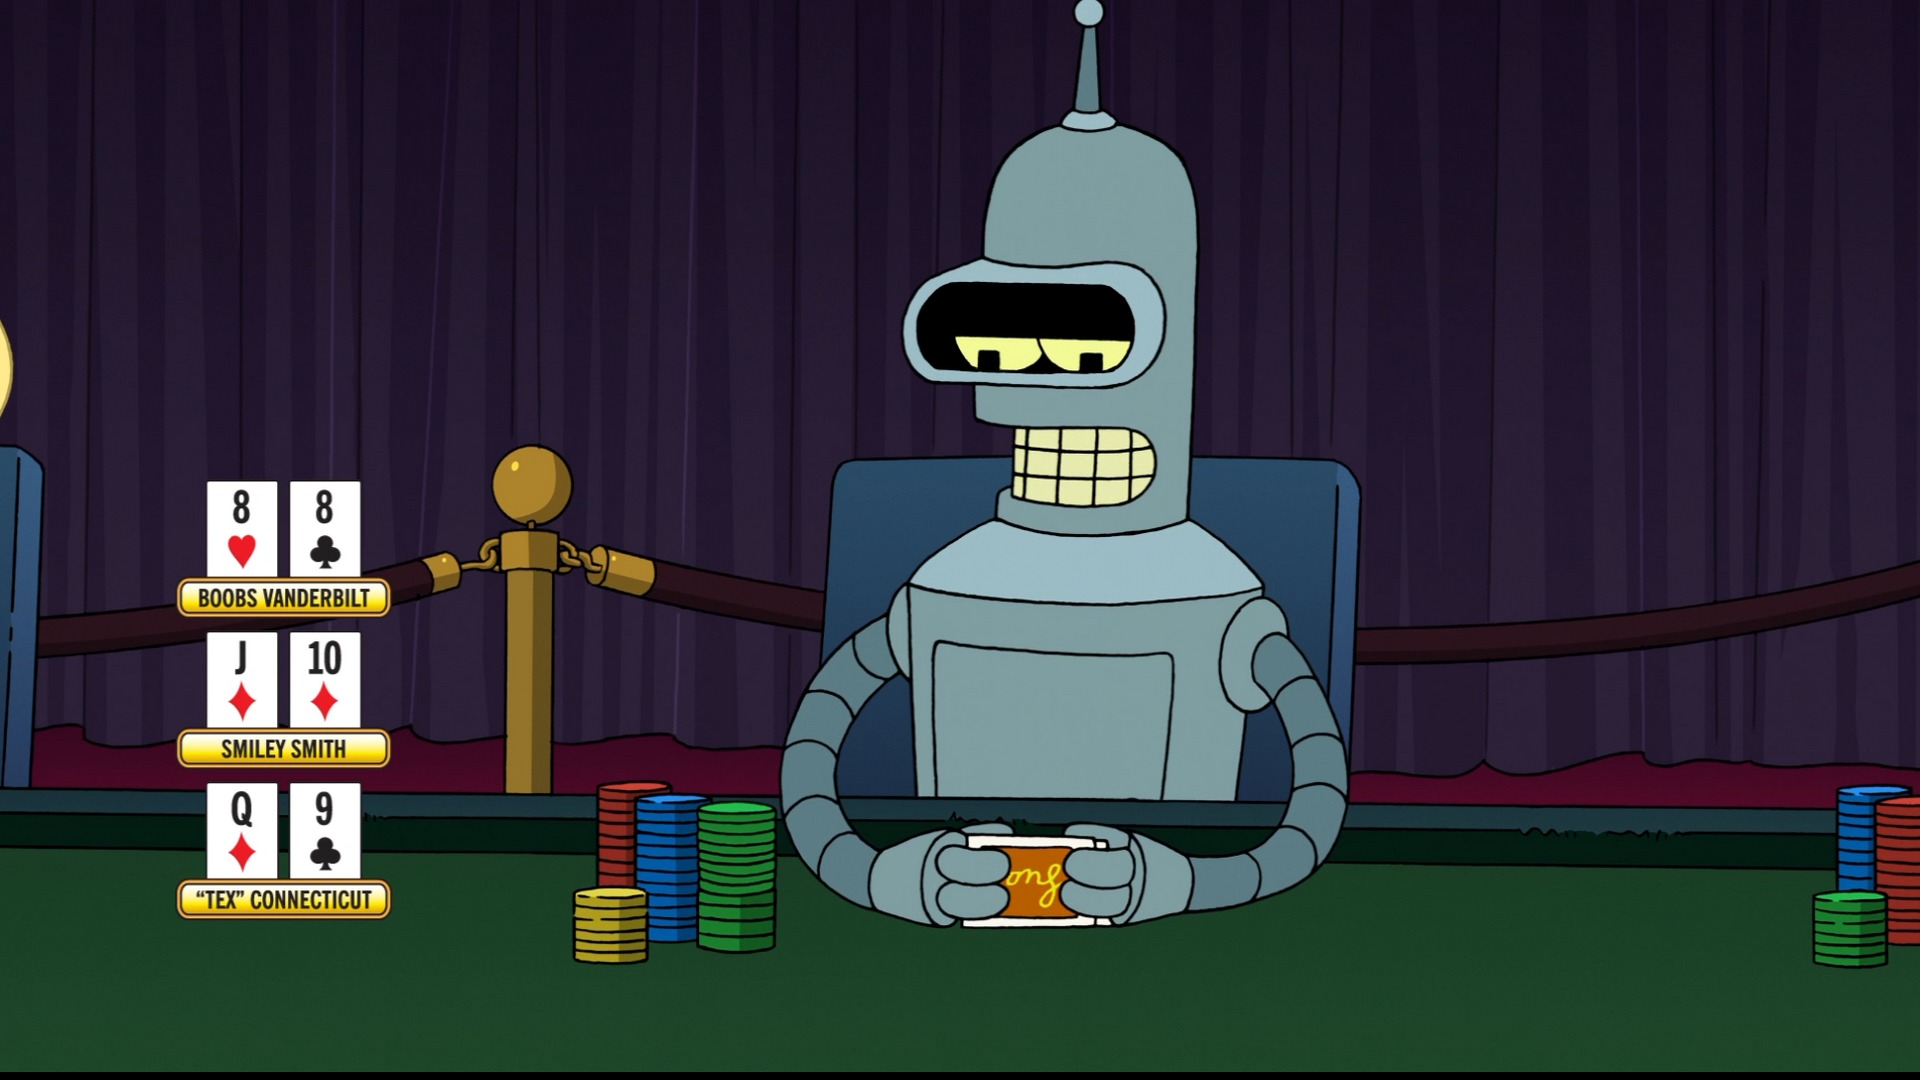 Bender futurama poker 1920x1080